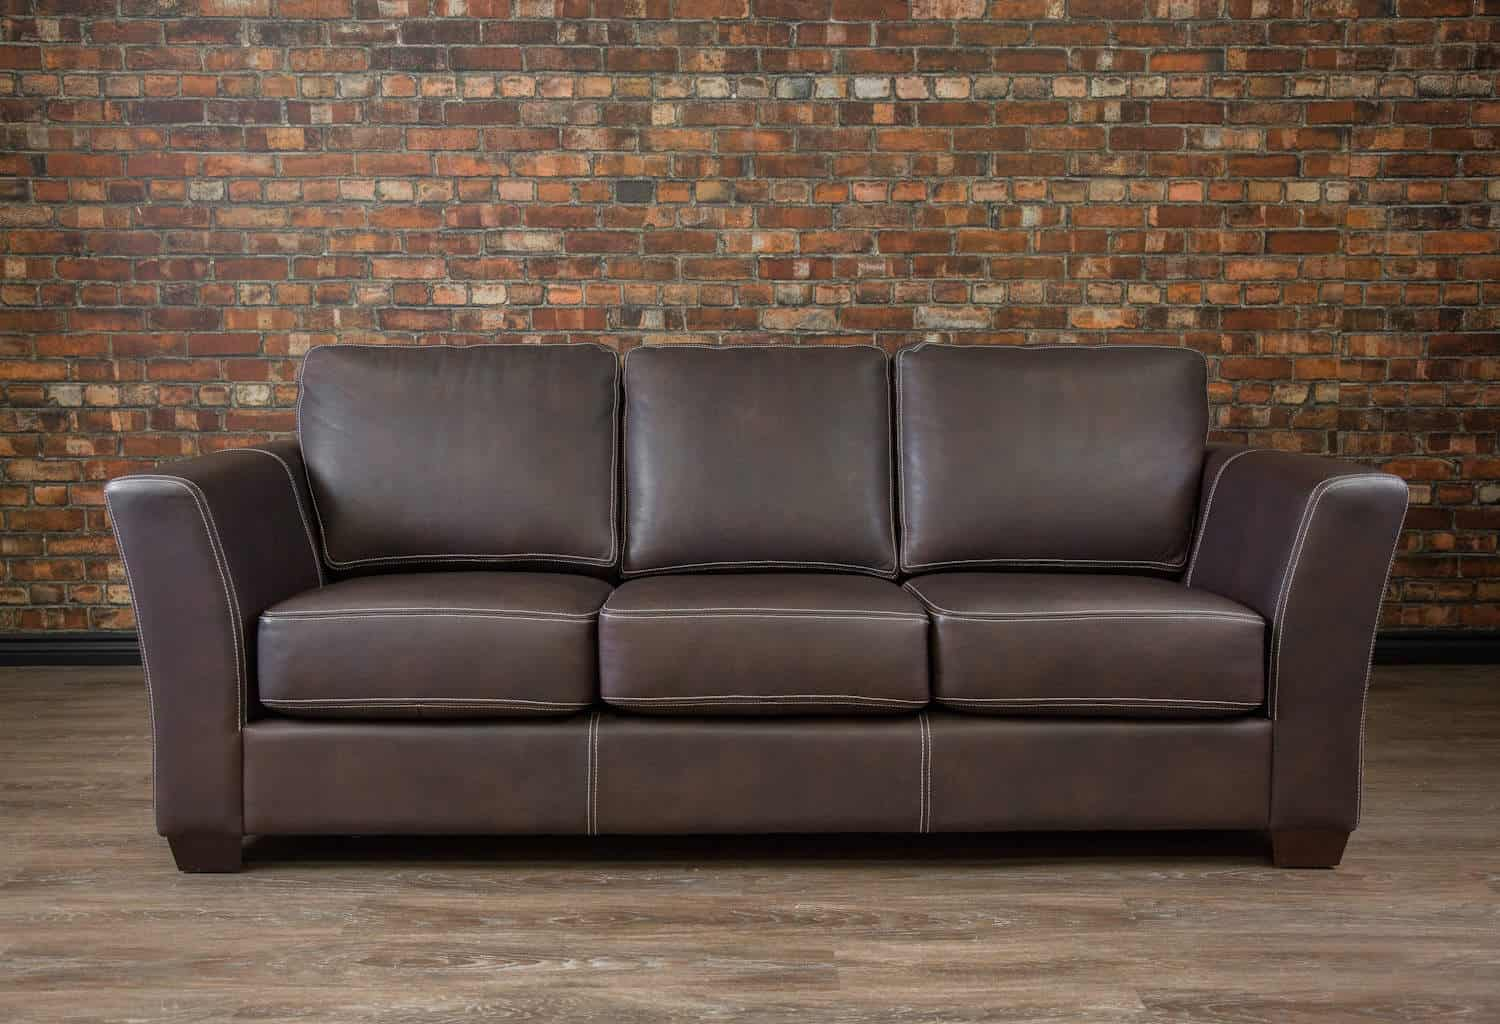 Aspen Leather Sofa The Aspen Collection Sofa Canada S Boss Leather Sofas And Thesofa